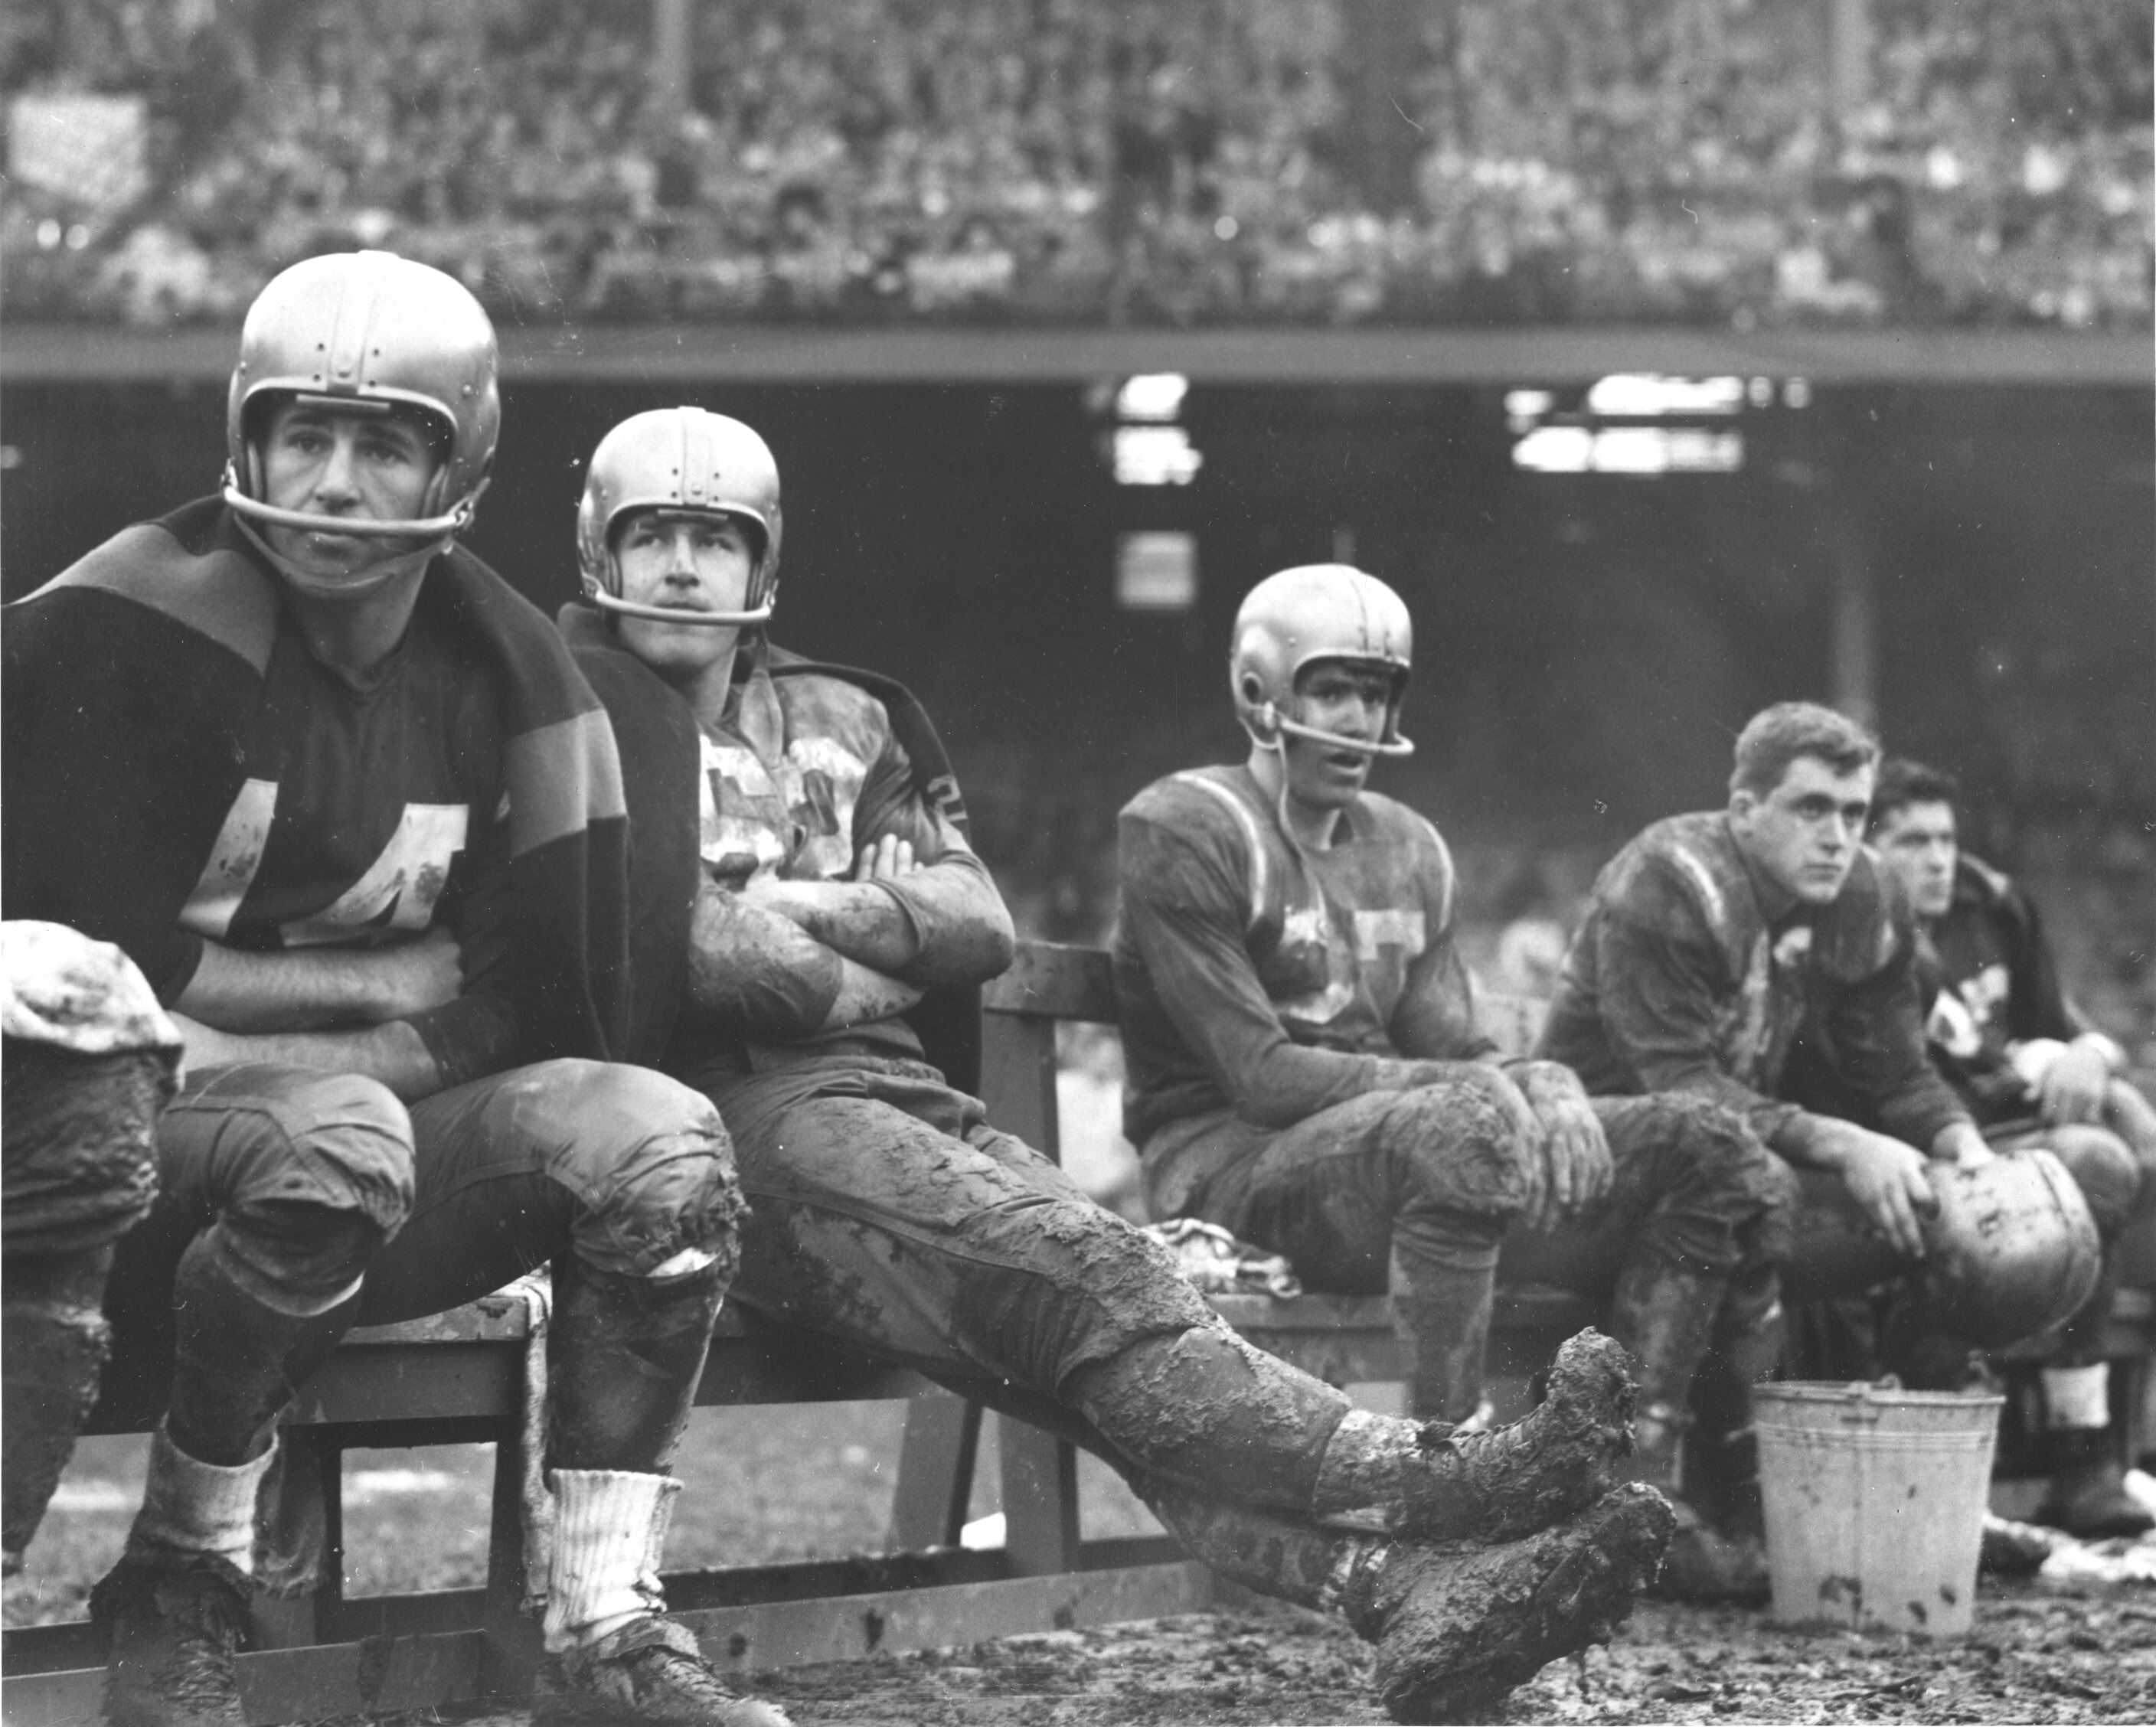 Rowe's Photographs of the Washington Redskins | The Unwritten Record